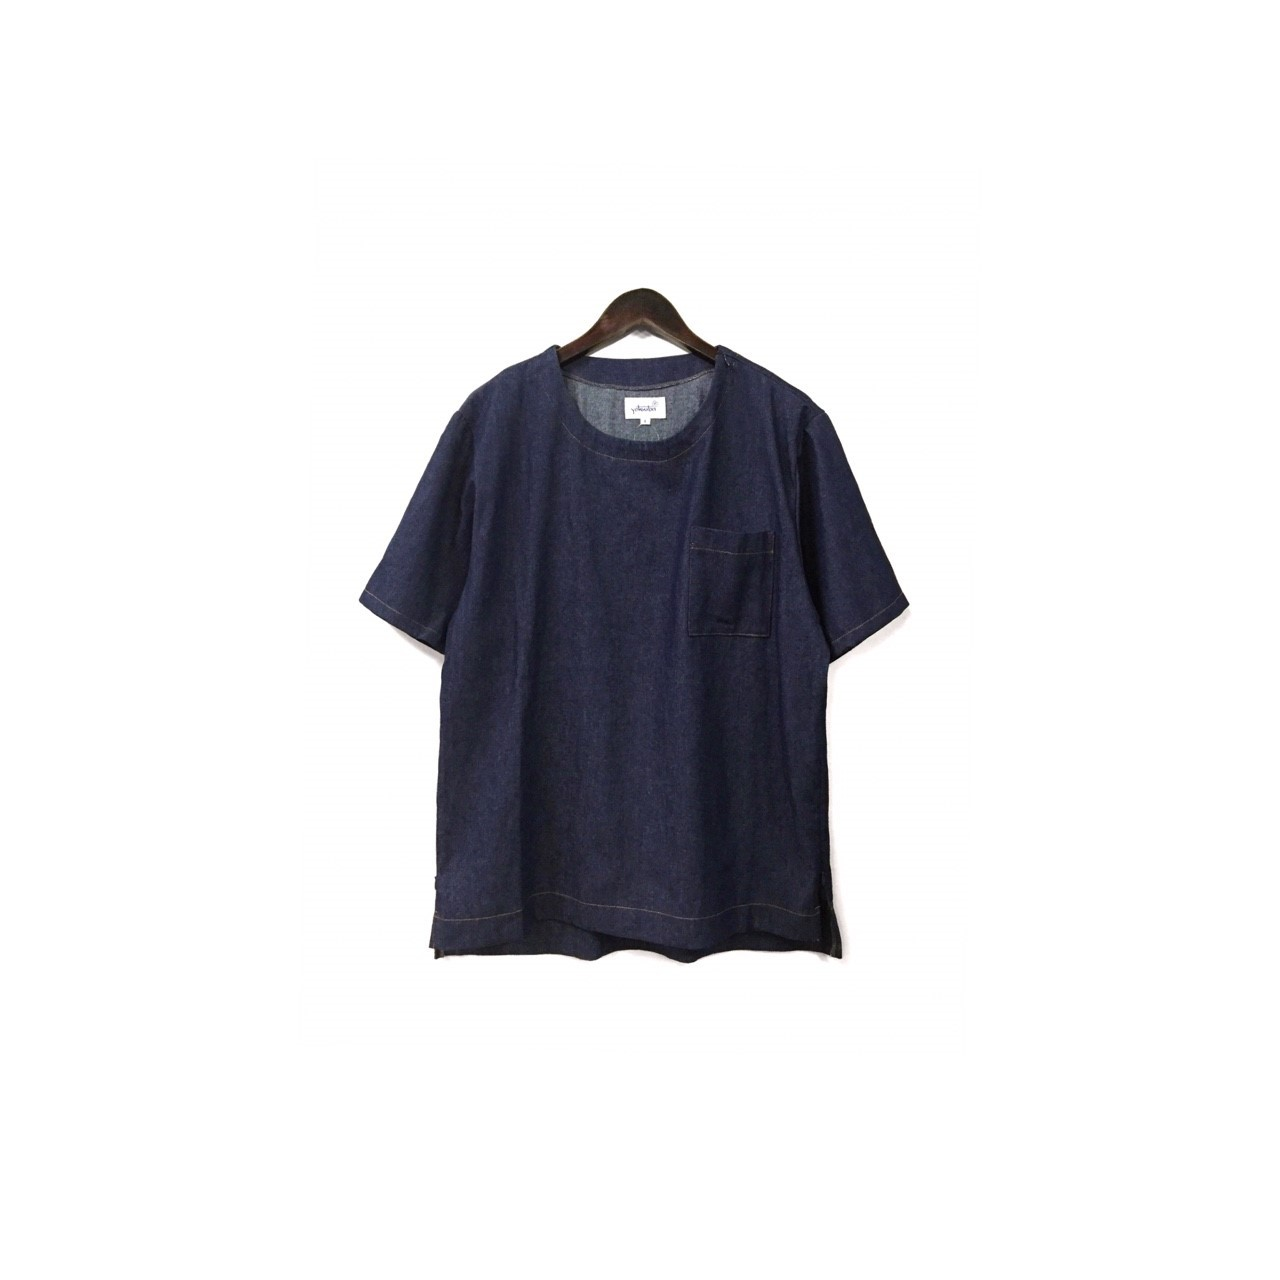 yotsuba - Shortsleeve Denim Tops / Indigo ¥12000+tax